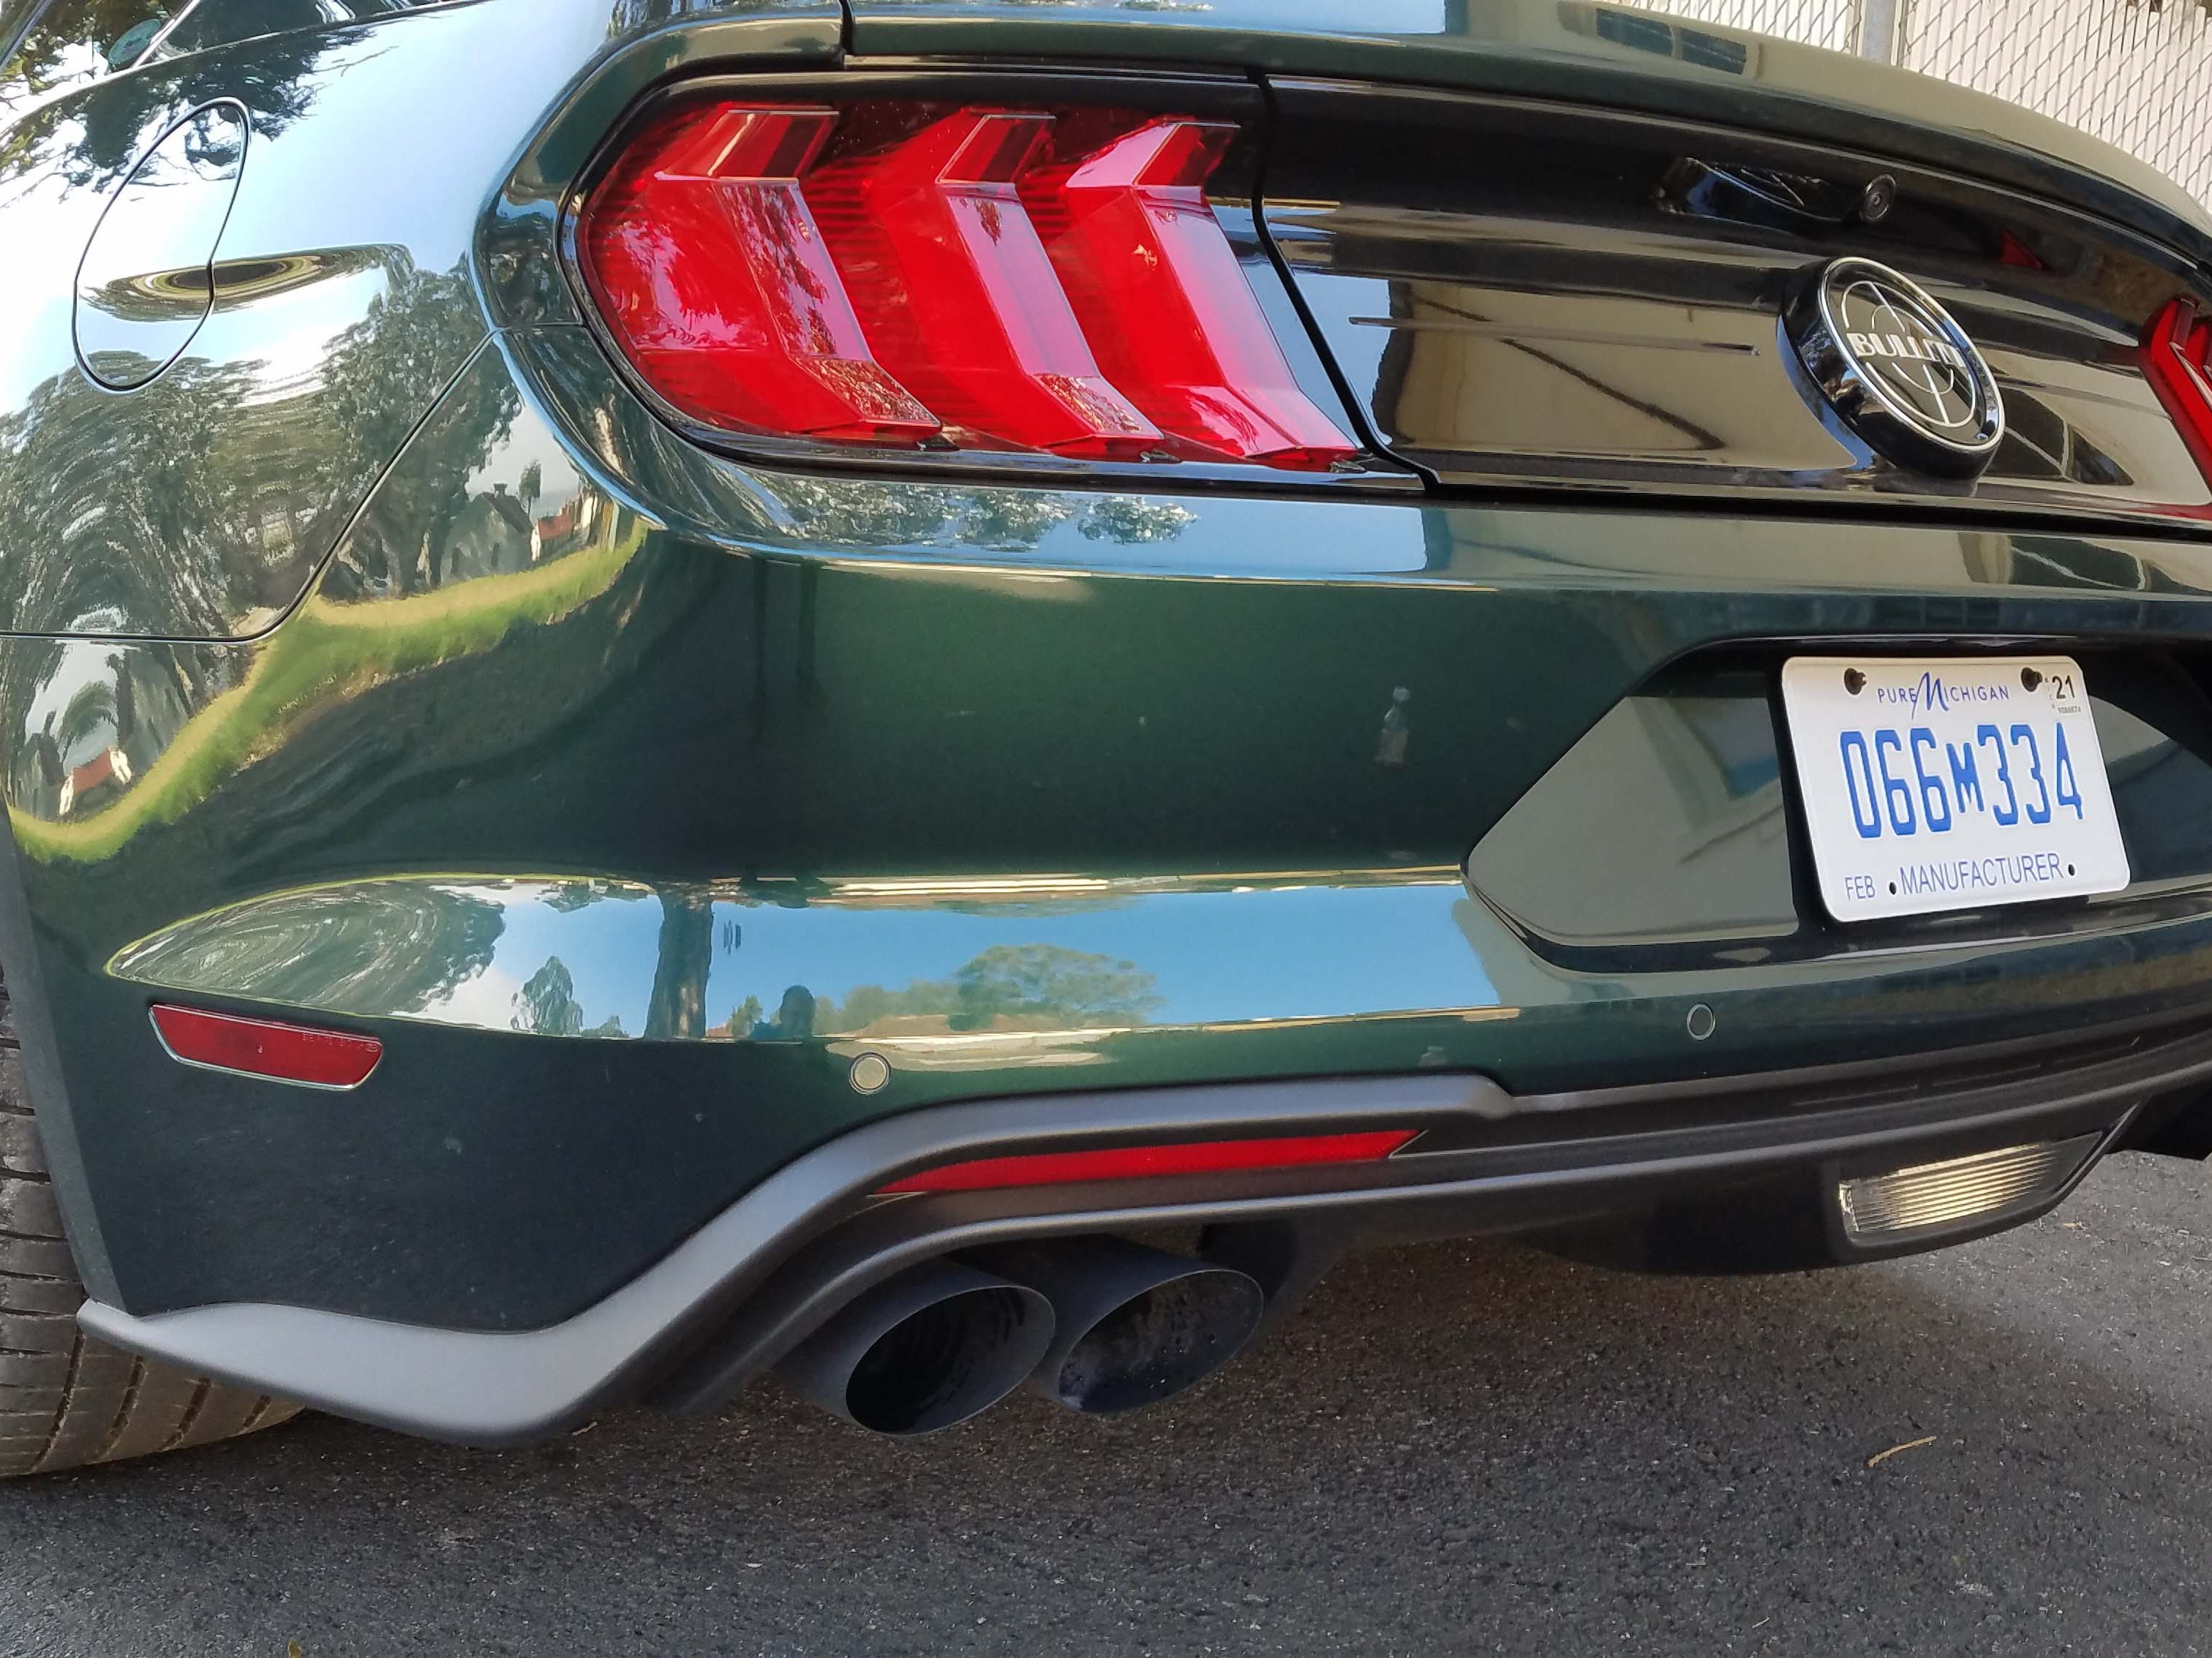 """With its """"Bullitt"""" badge and cut, quad tailpipes, the 2019 Ford Mustang Bullitt is unmistakable from the rear. Oh, yeah — and it's Highland Green, just like the movie car."""